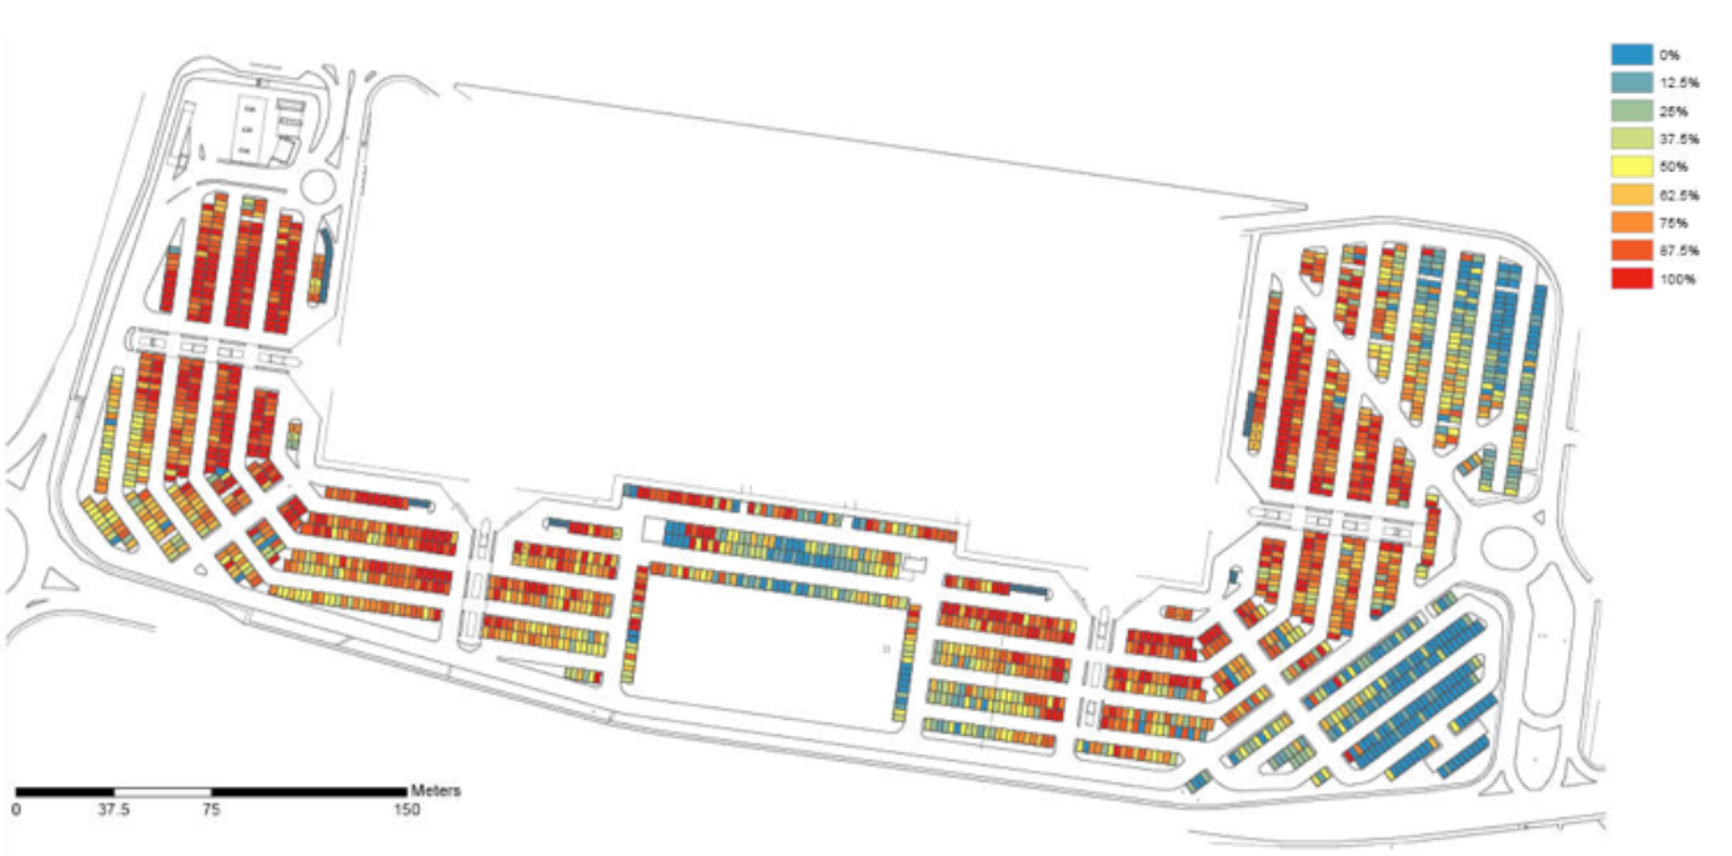 Systematica-Curno Shopping Centre-Parking Occupancy Index